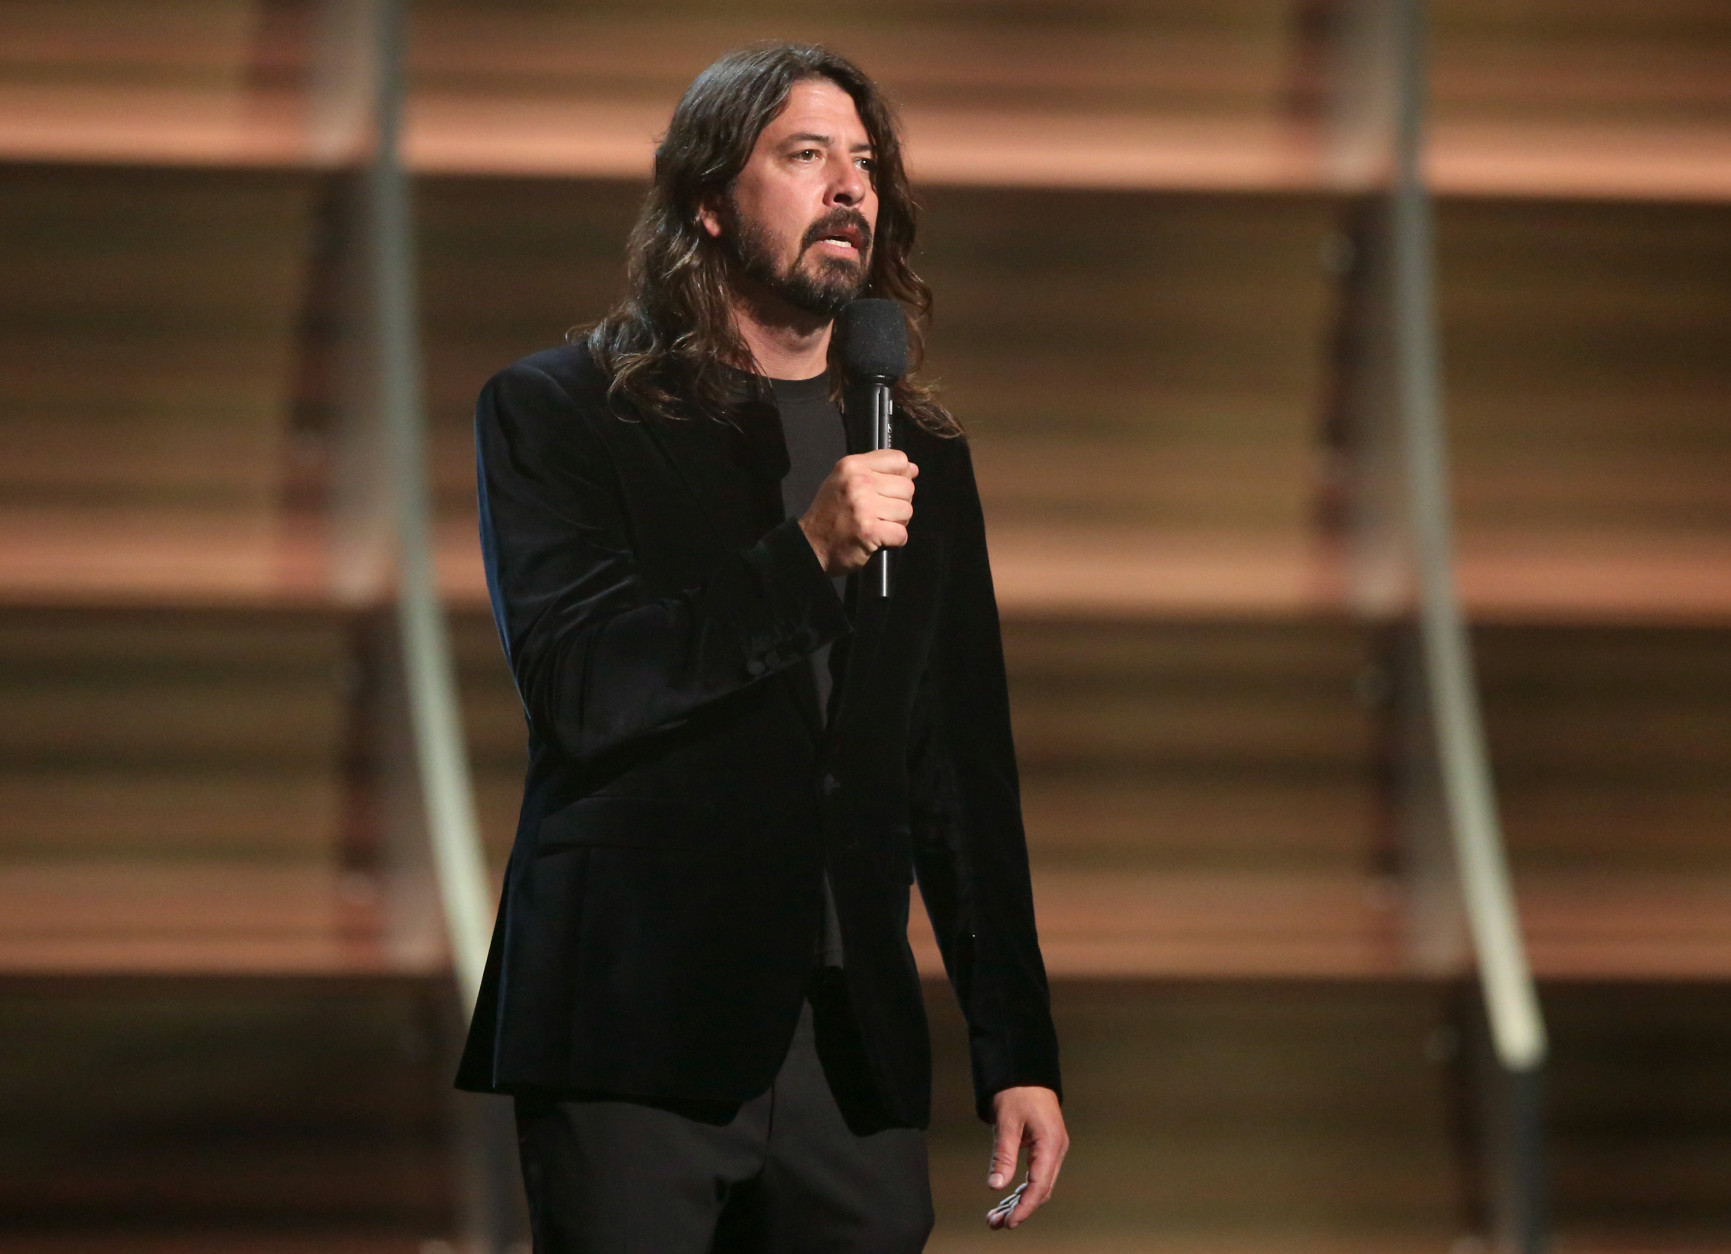 Dave Grohl introduces a performance by Hollywood Vampires at the 58th annual Grammy Awards on Monday, Feb. 15, 2016, in Los Angeles. (Photo by Matt Sayles/Invision/AP)